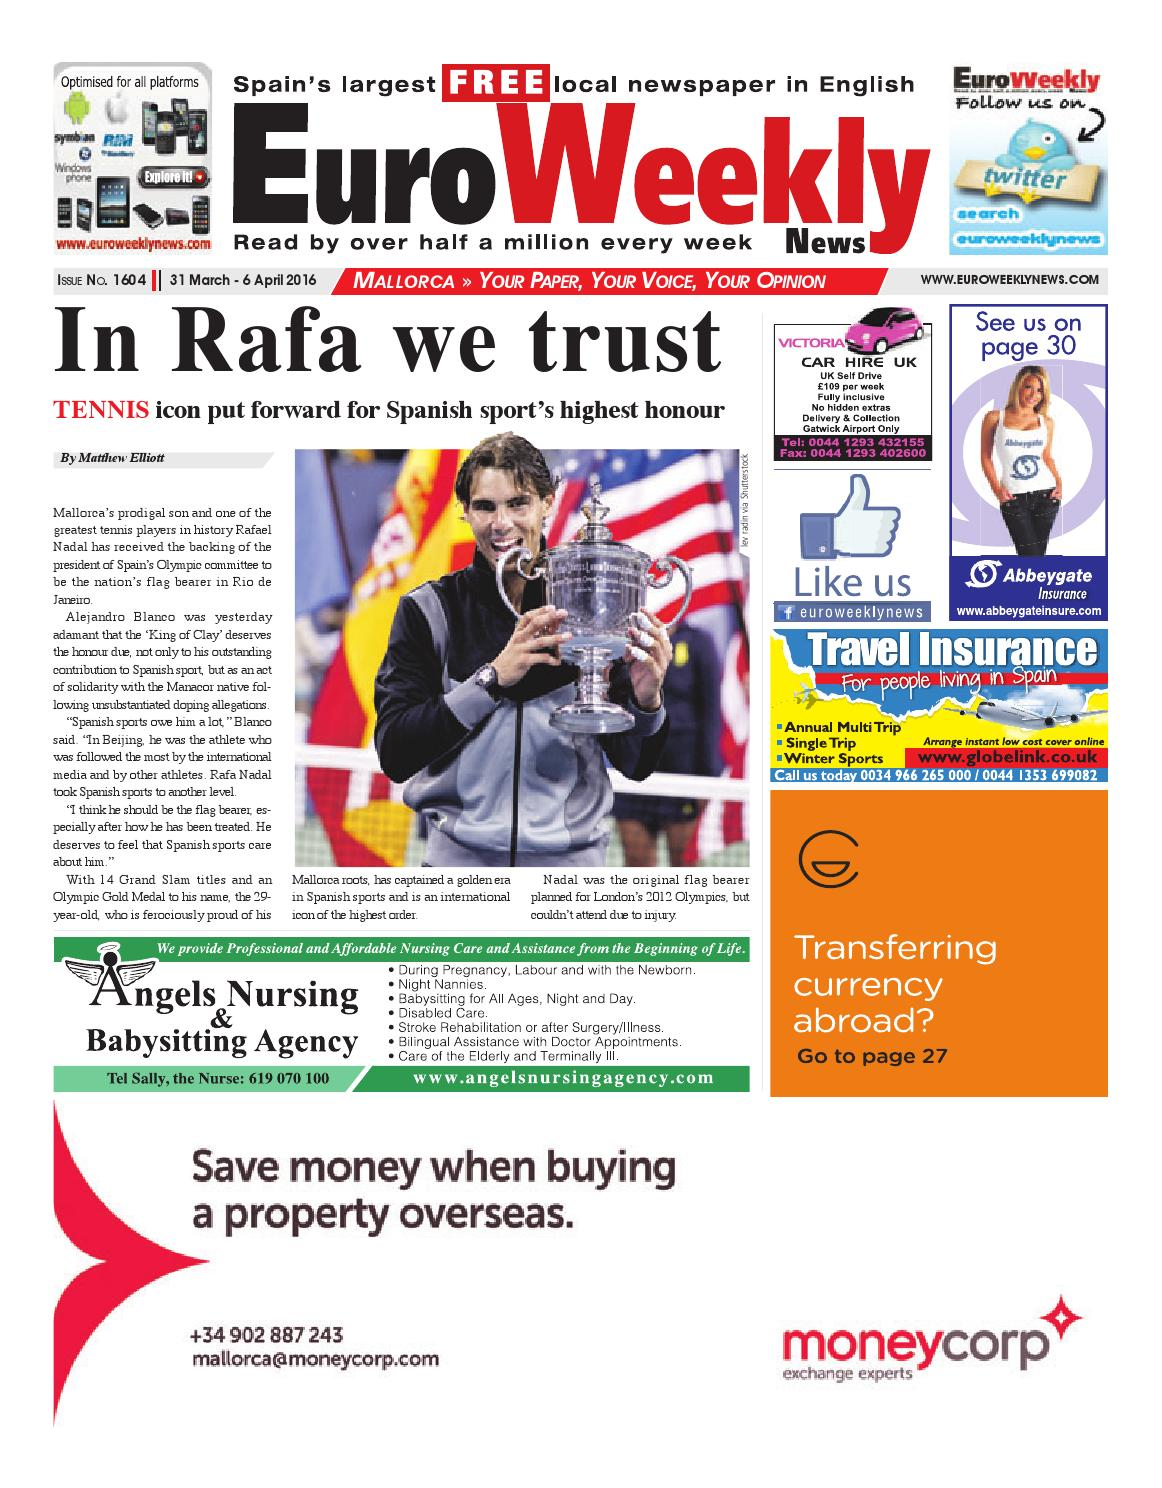 Euro Weekly News Mallorca 31 March 6 April 2016 Issue 1604 By  # Rogelio Muebles San Rafael